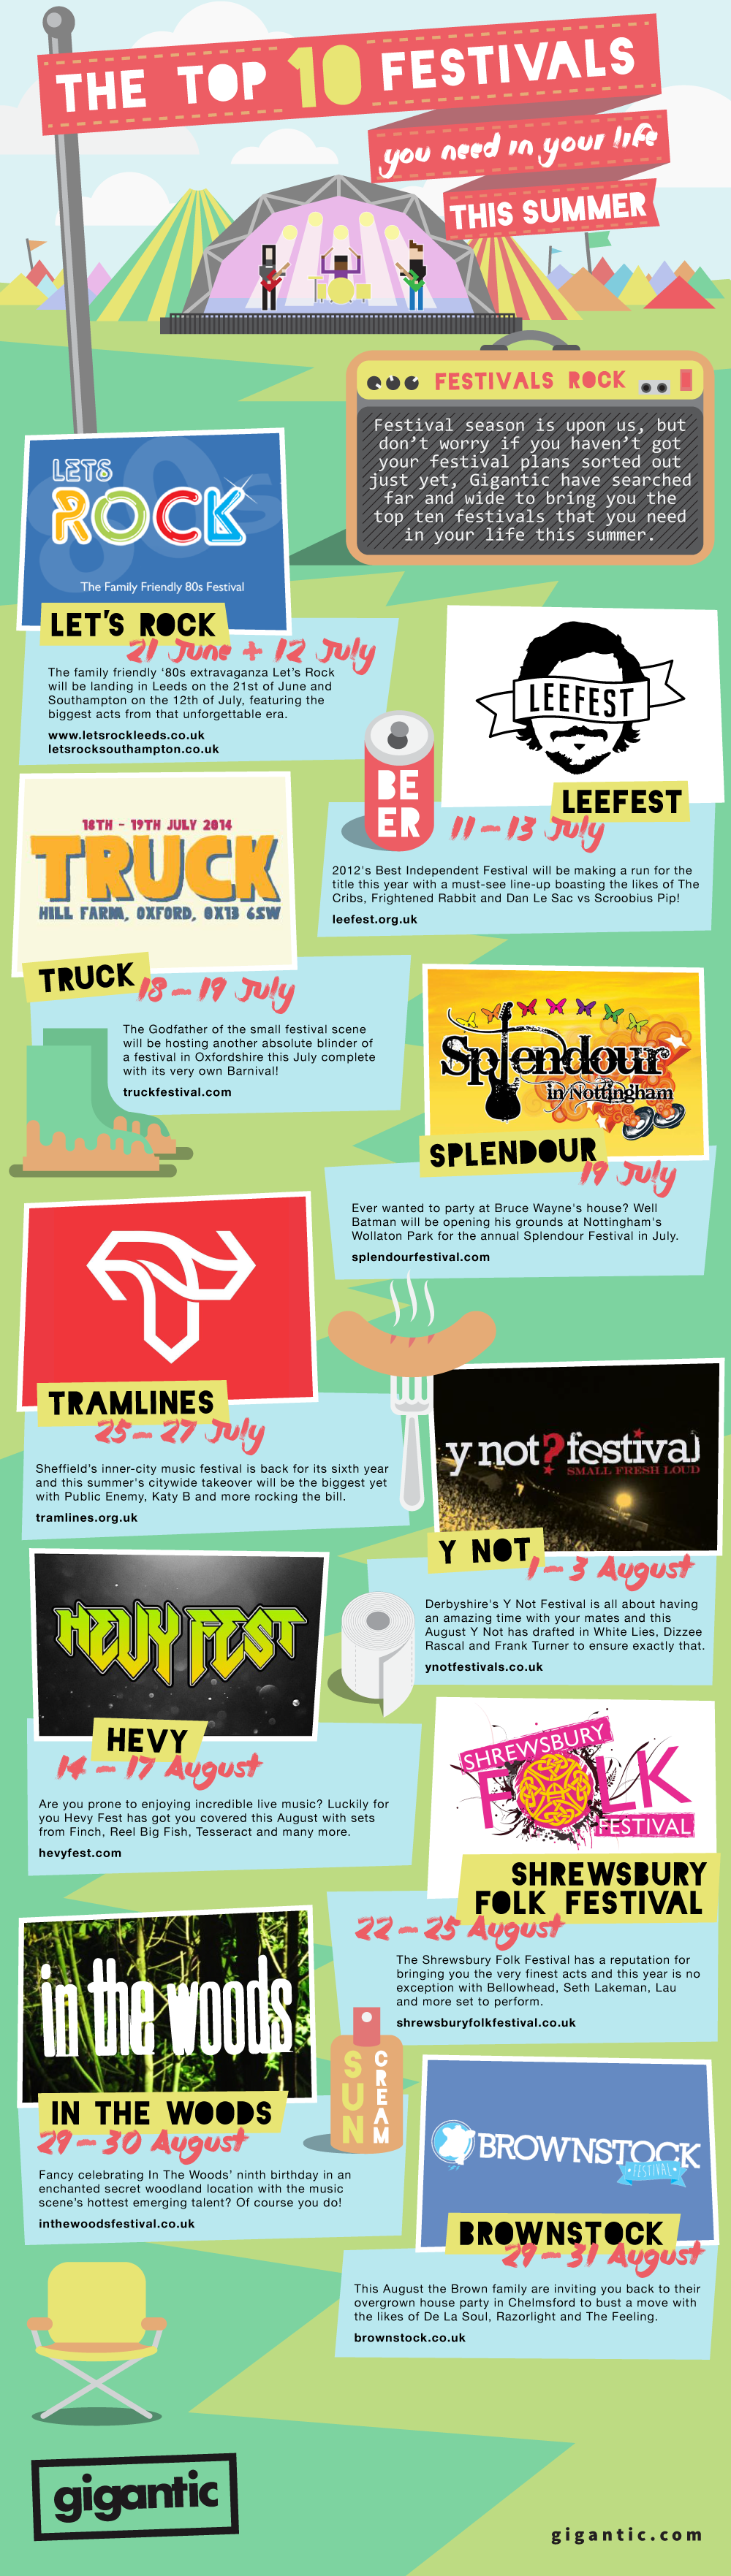 Gigantic Tickets 10 Ten Festivals Infographic